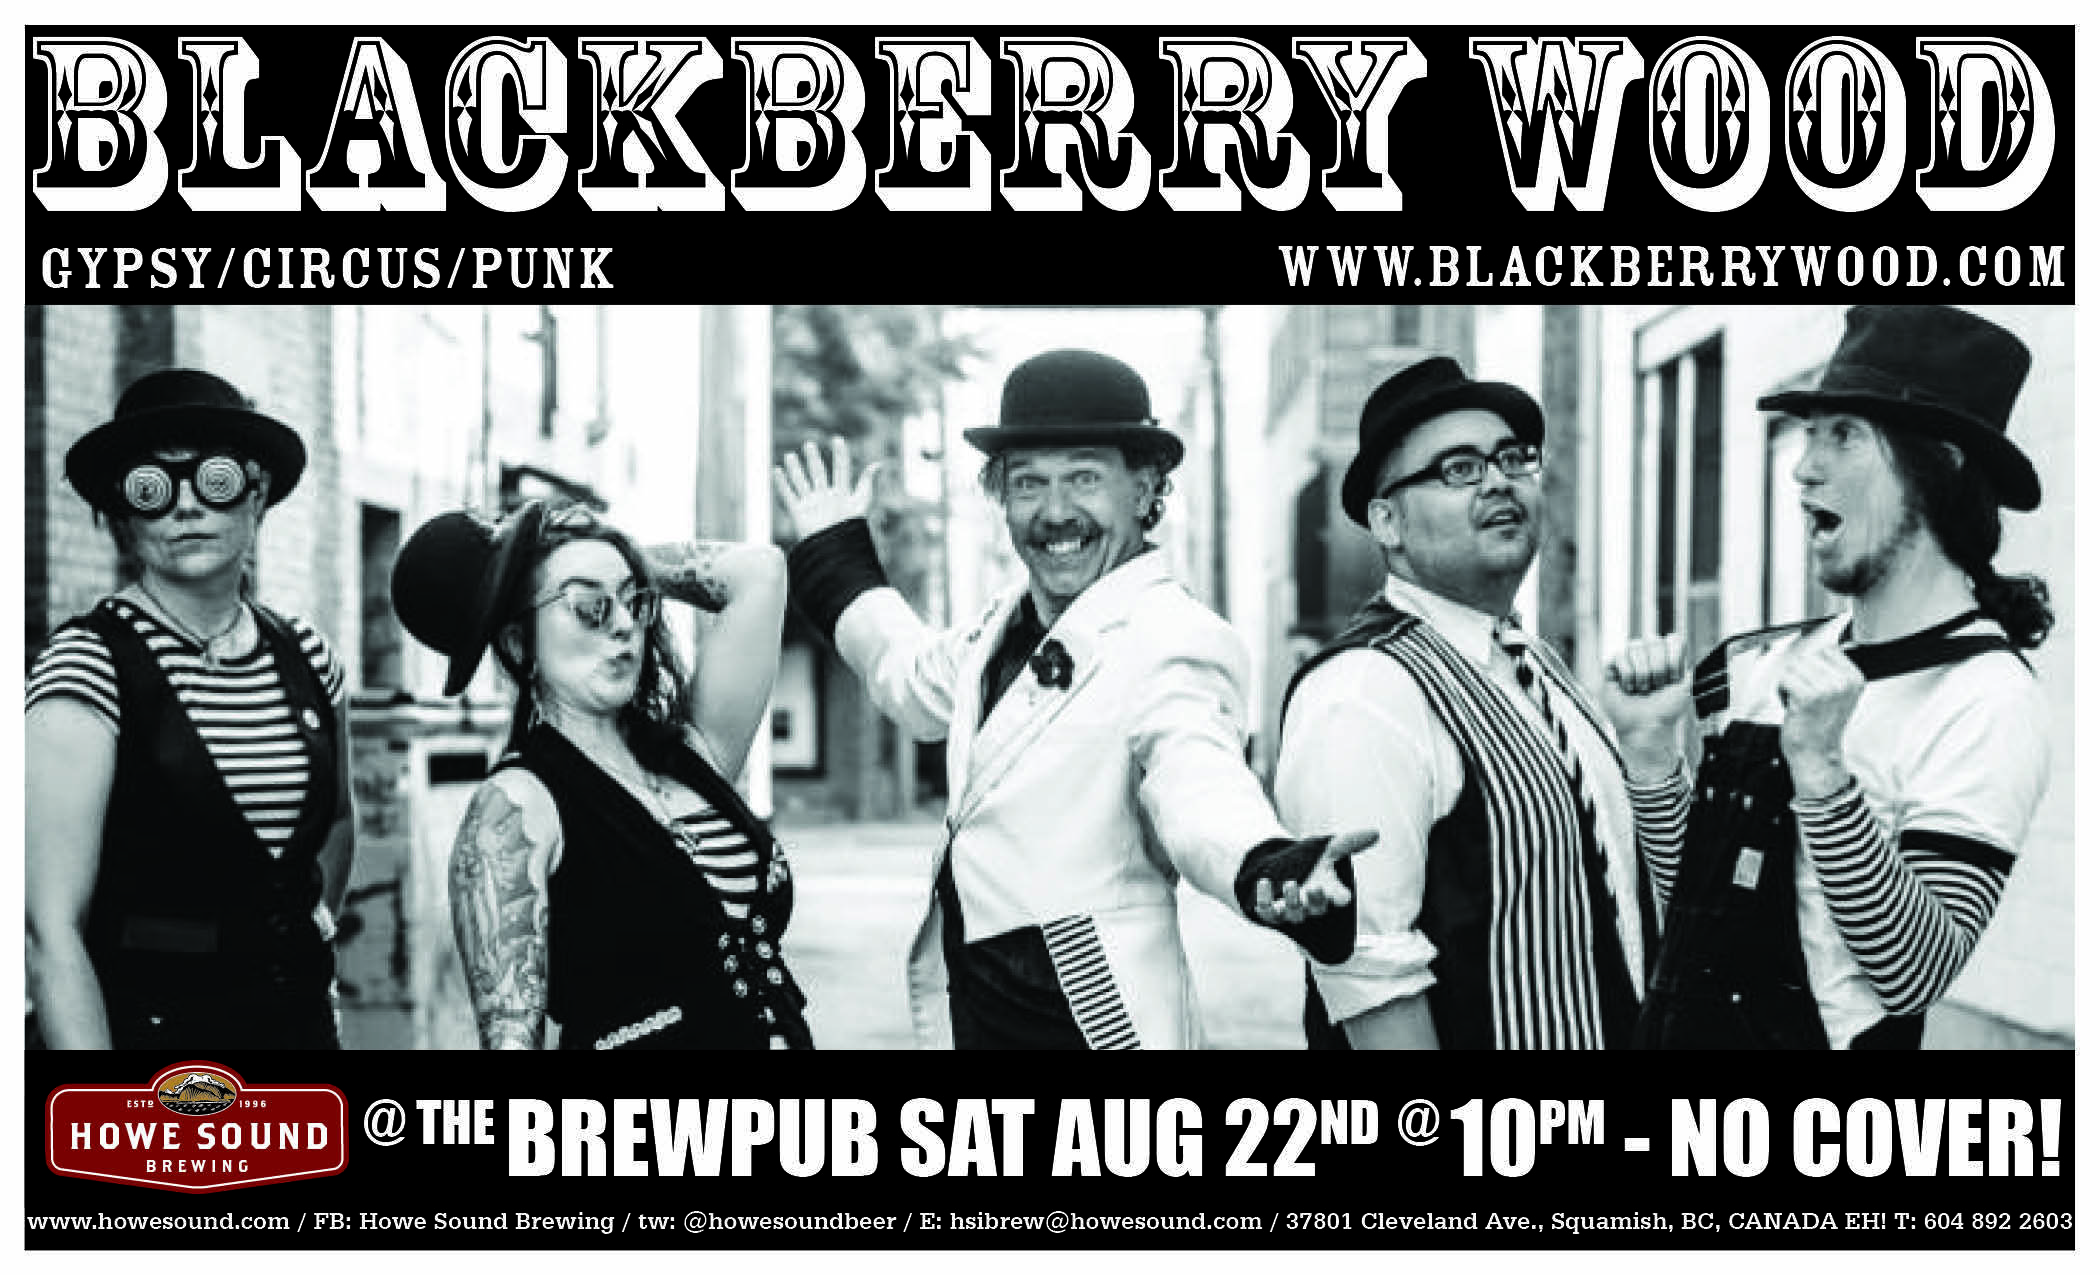 Saturday, August 22 at 10 pm - Blackberry Wood at the Howe Sound Brew Pub